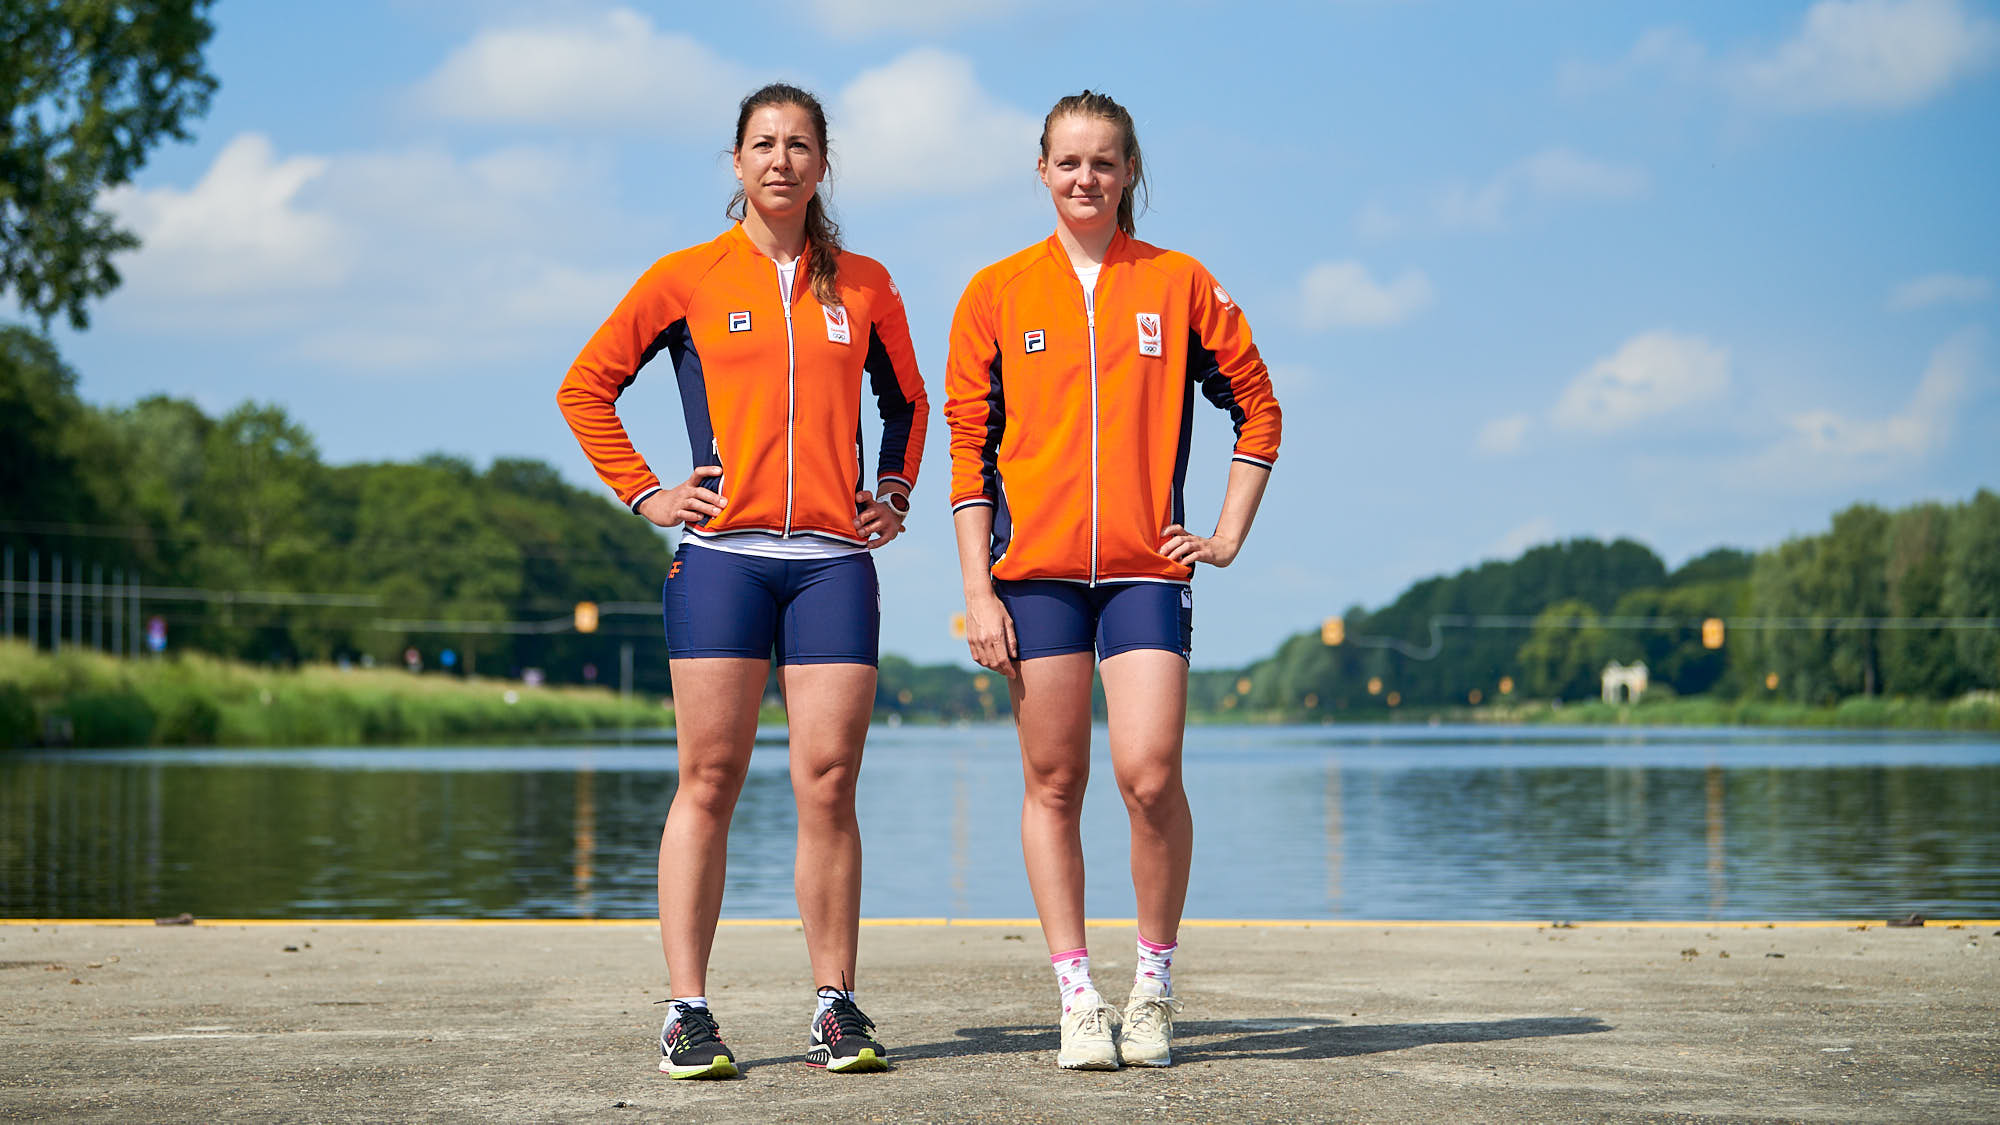 Portrait of top Dutch rowing athletes Ilse Paulis and Marieke Keijser